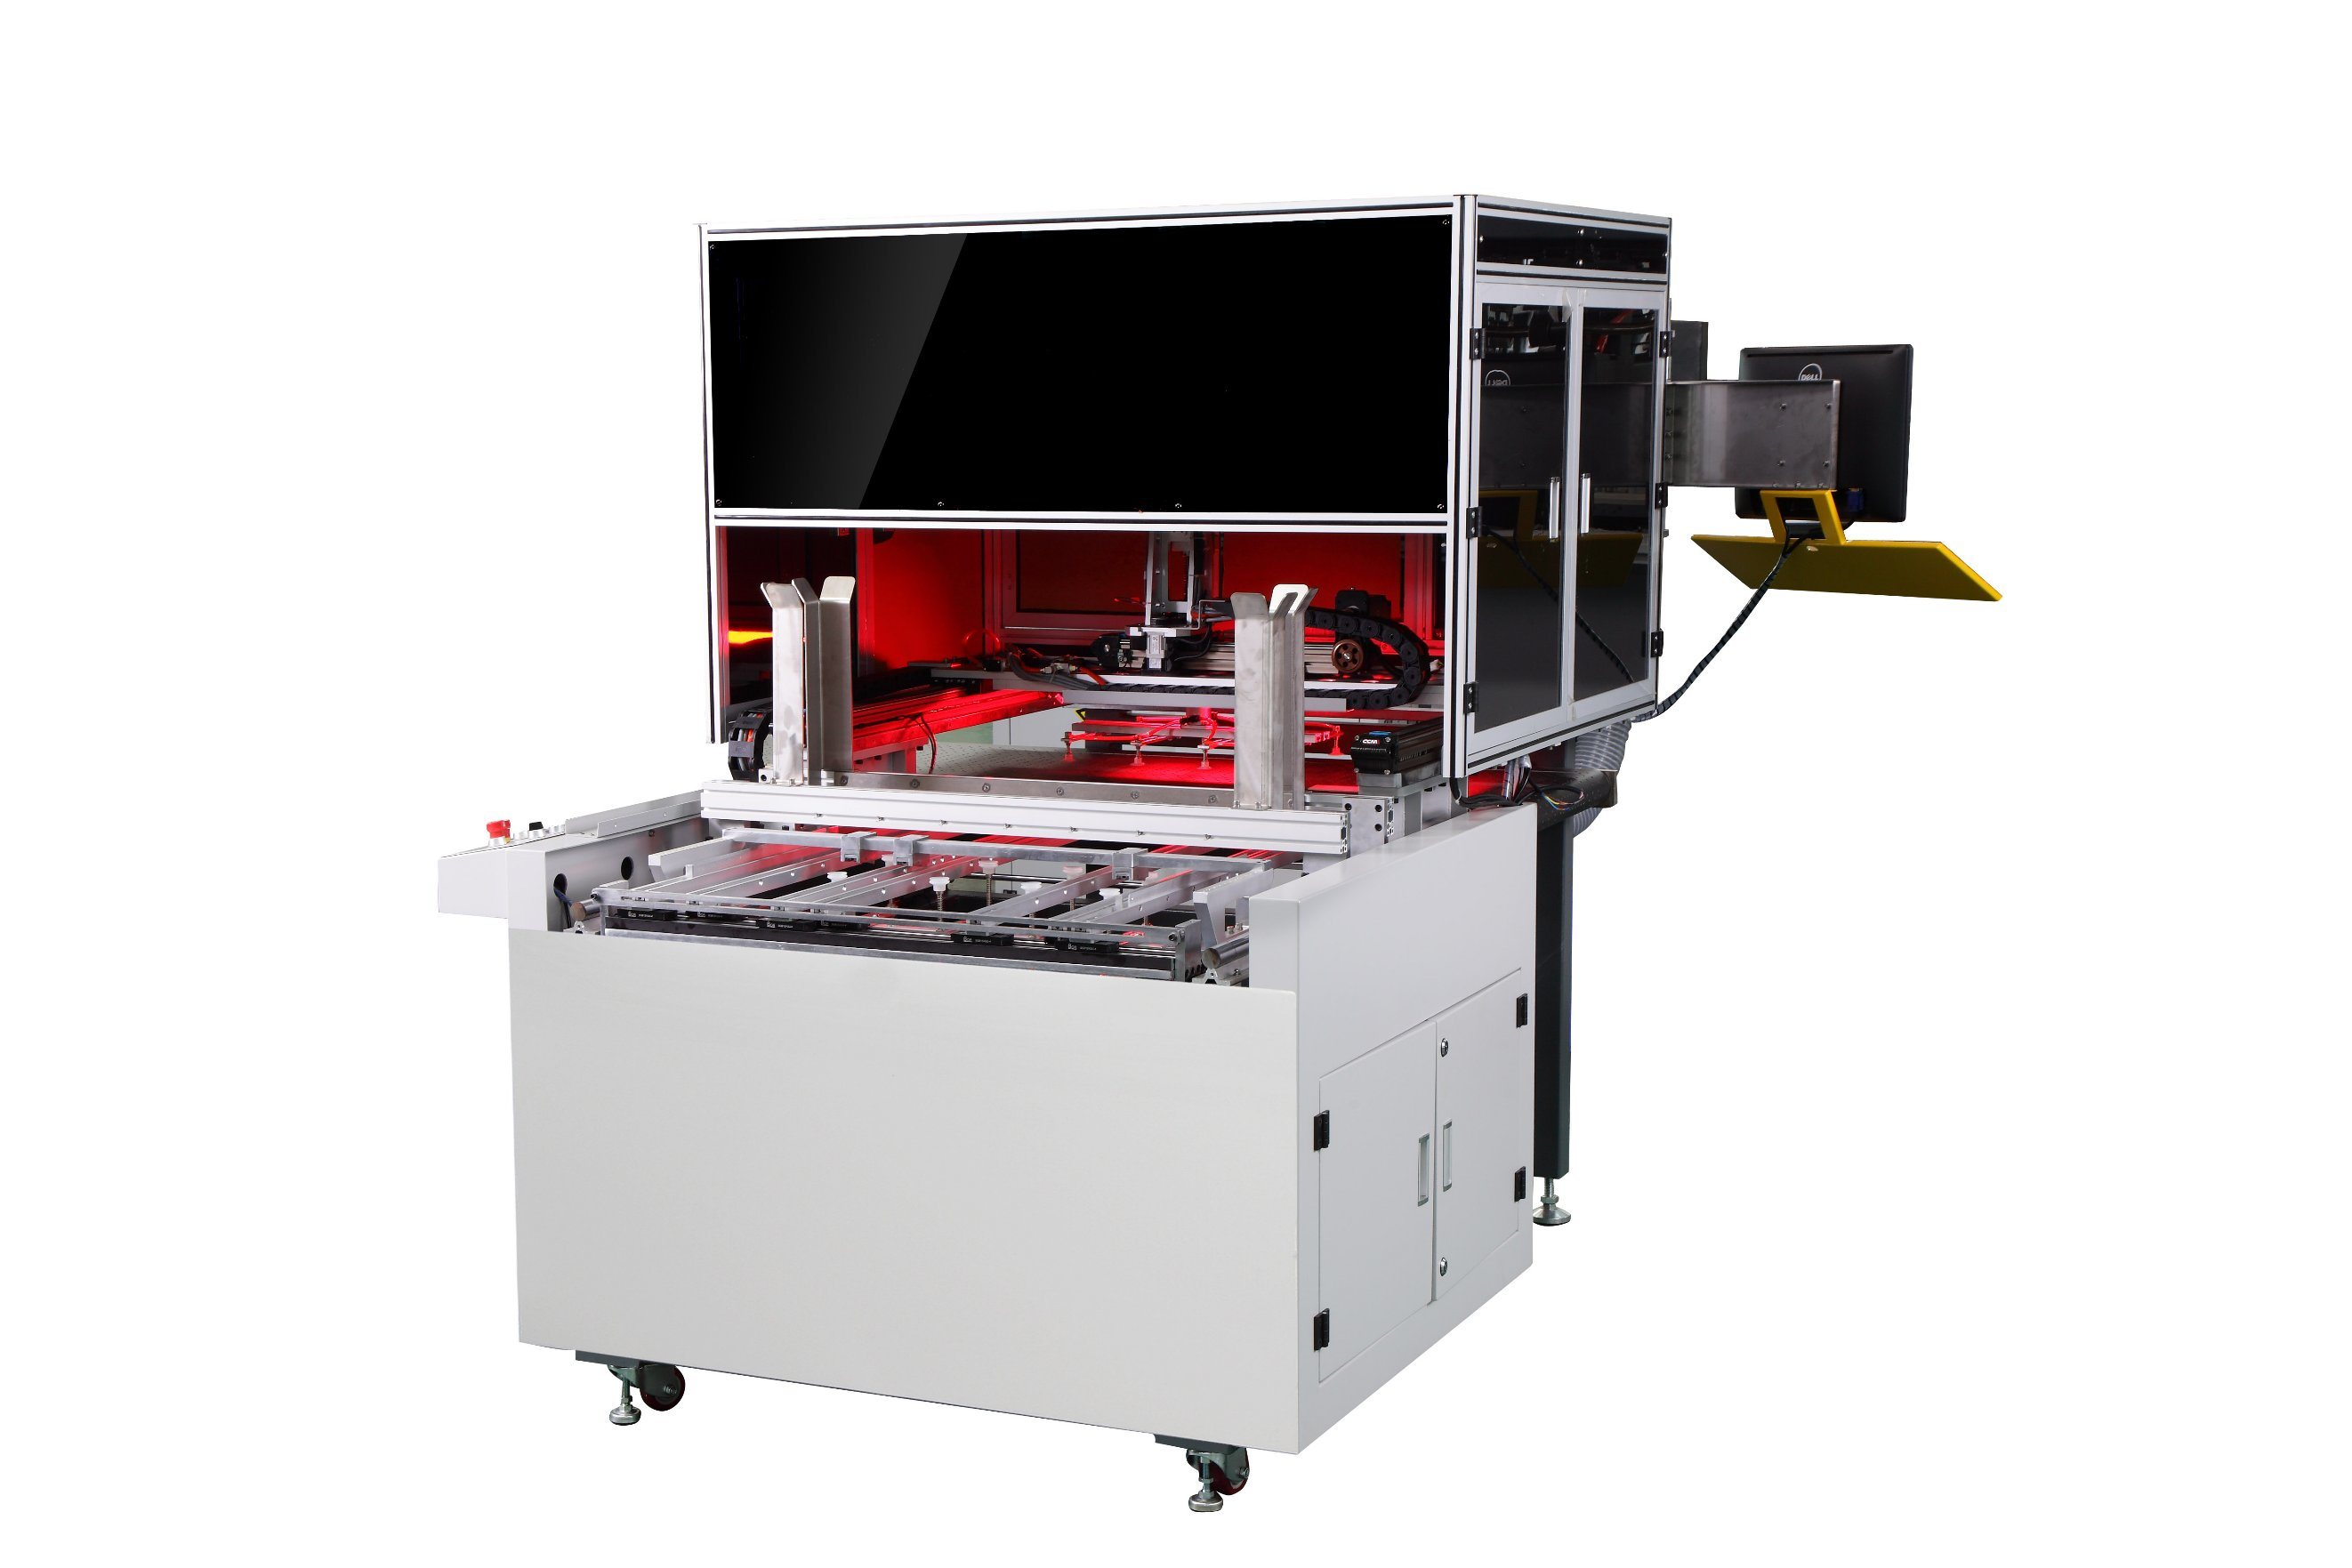 Automatic Servo Positioning Packaging Cot Shell Case Maker Glue Making Machine